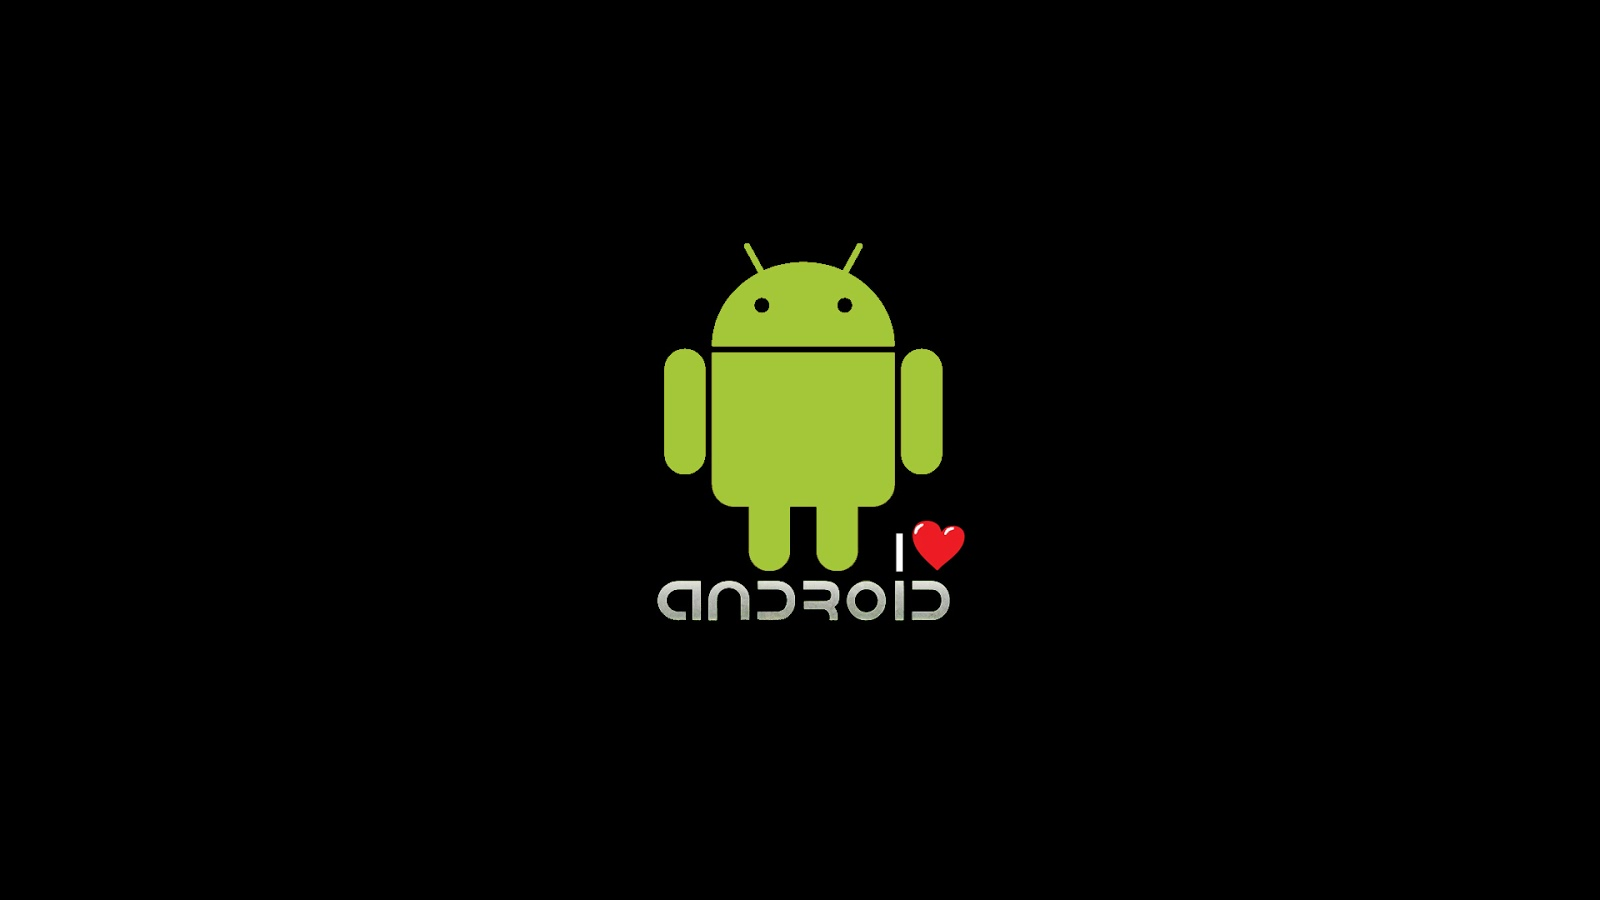 Mooie Android Wallpapers - Achtergronden